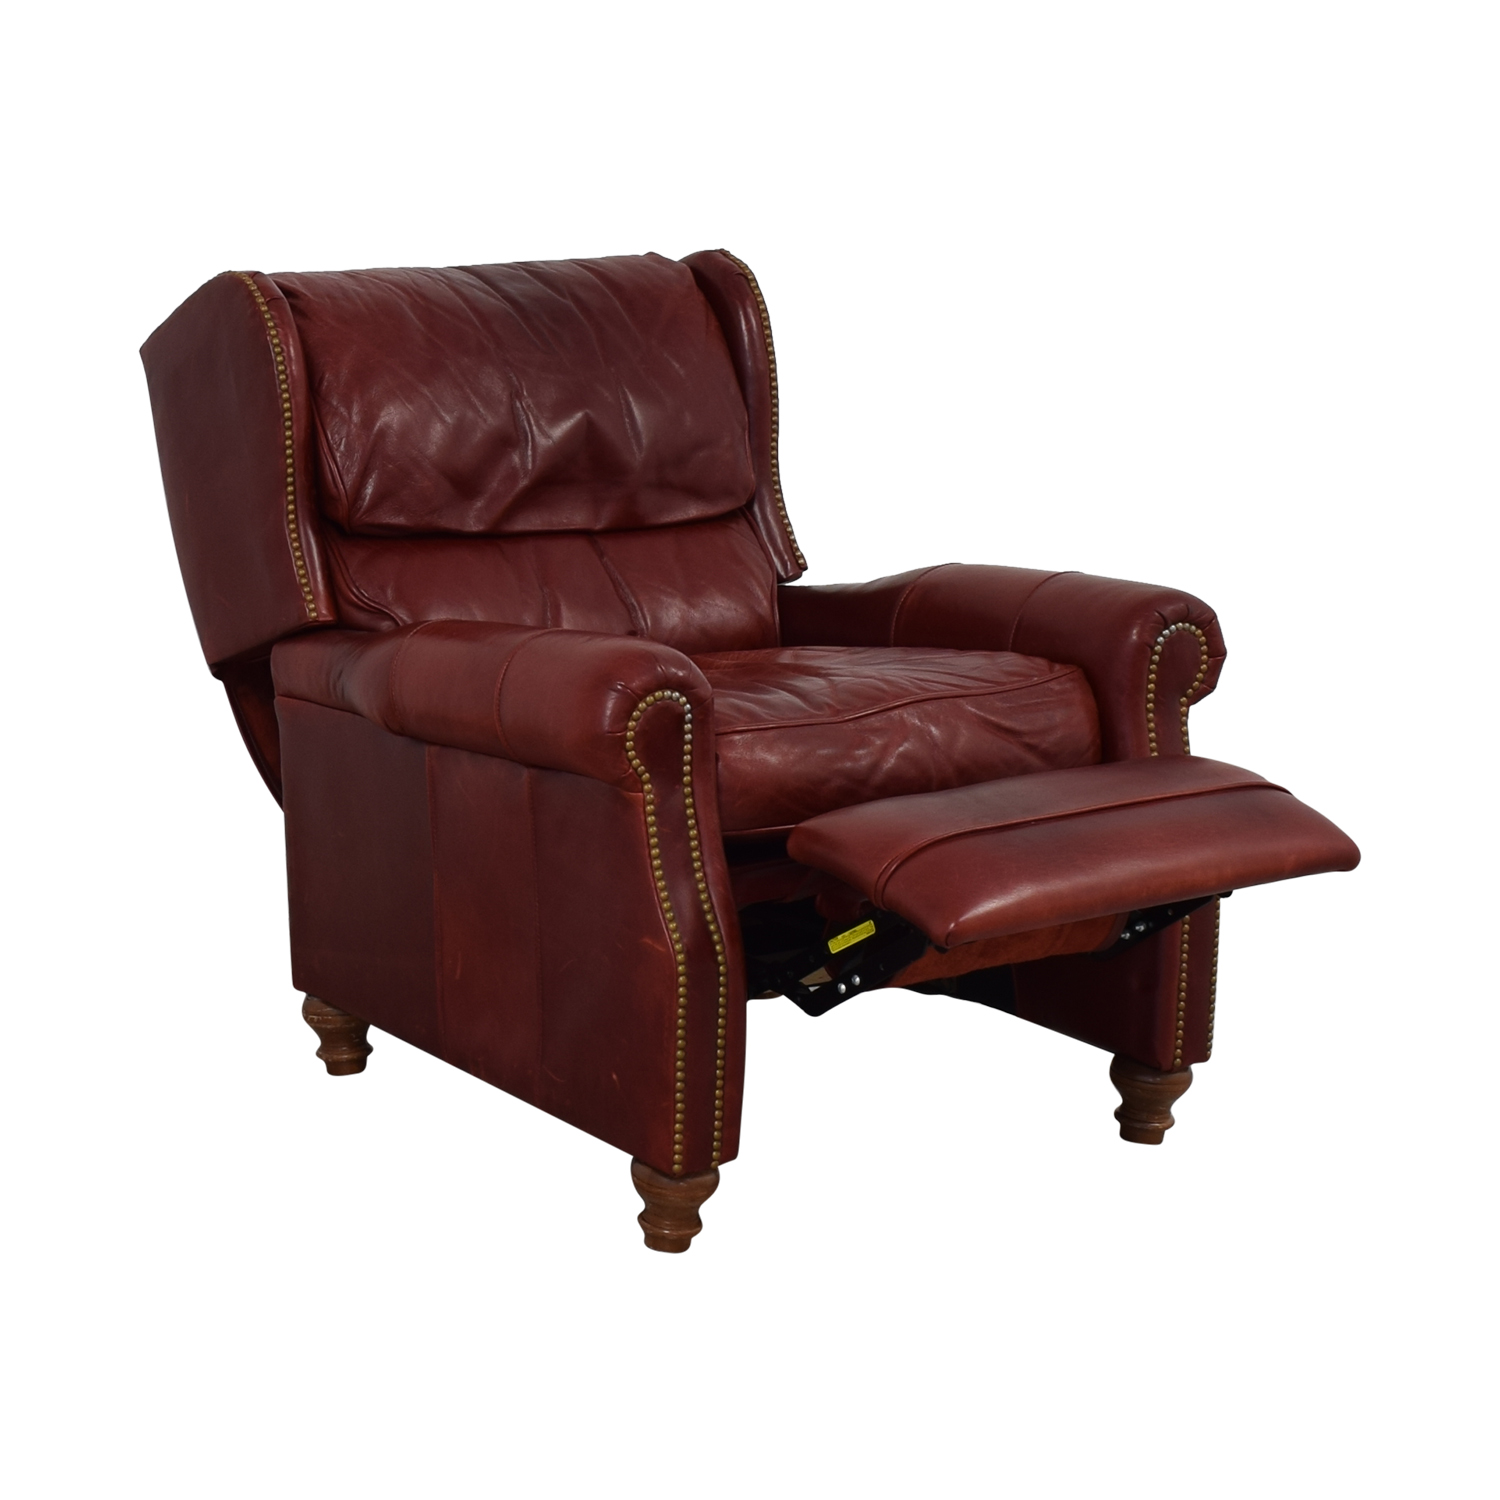 McKinley Leather Furniture McKinley Leather Recliner used